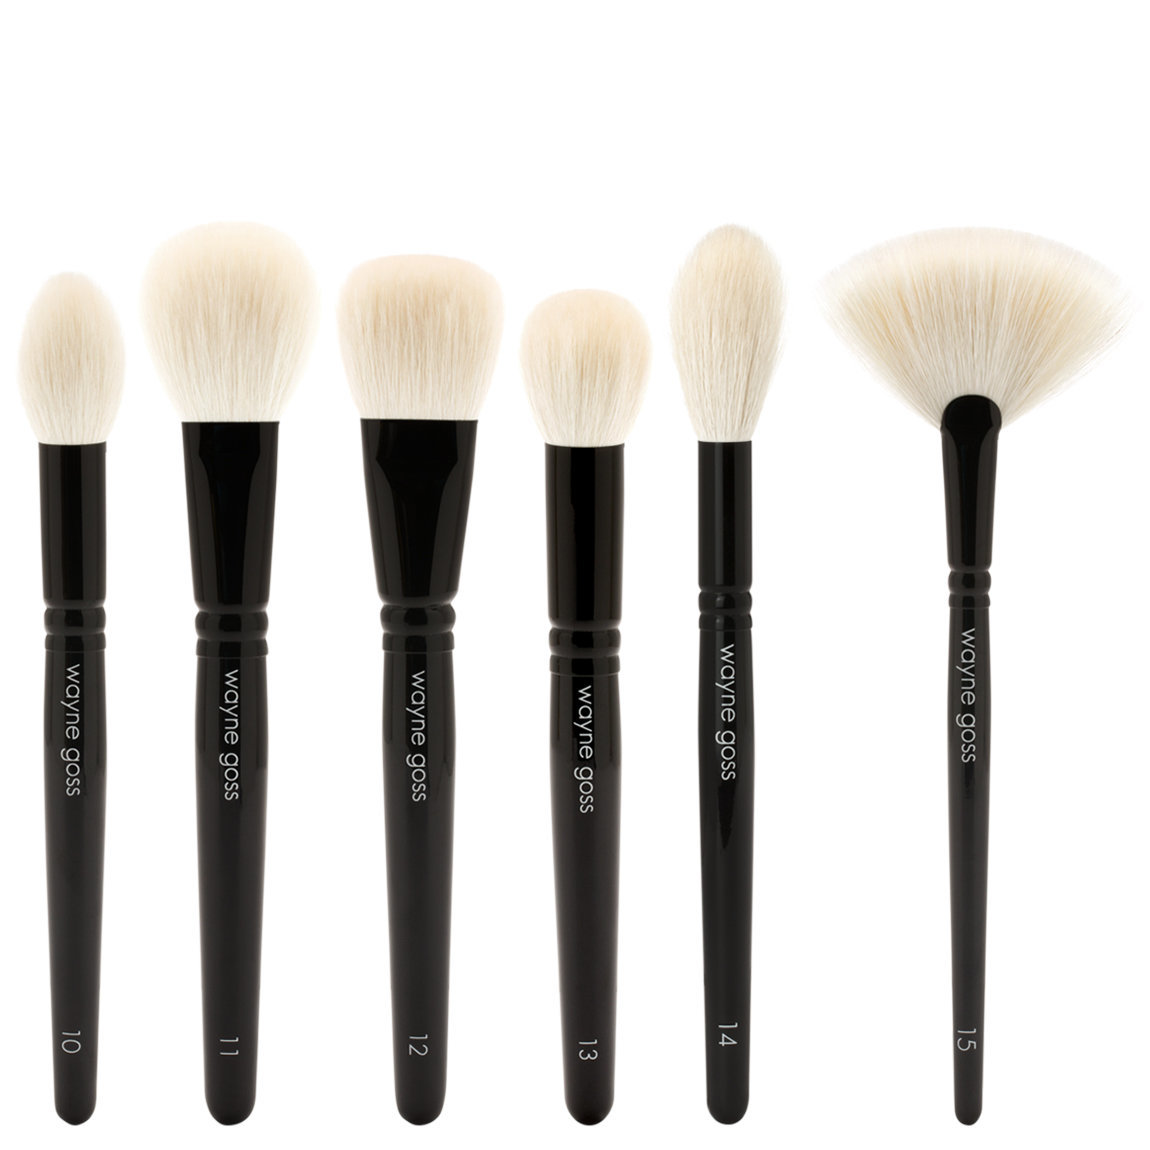 Wayne Goss The Face Set product smear.